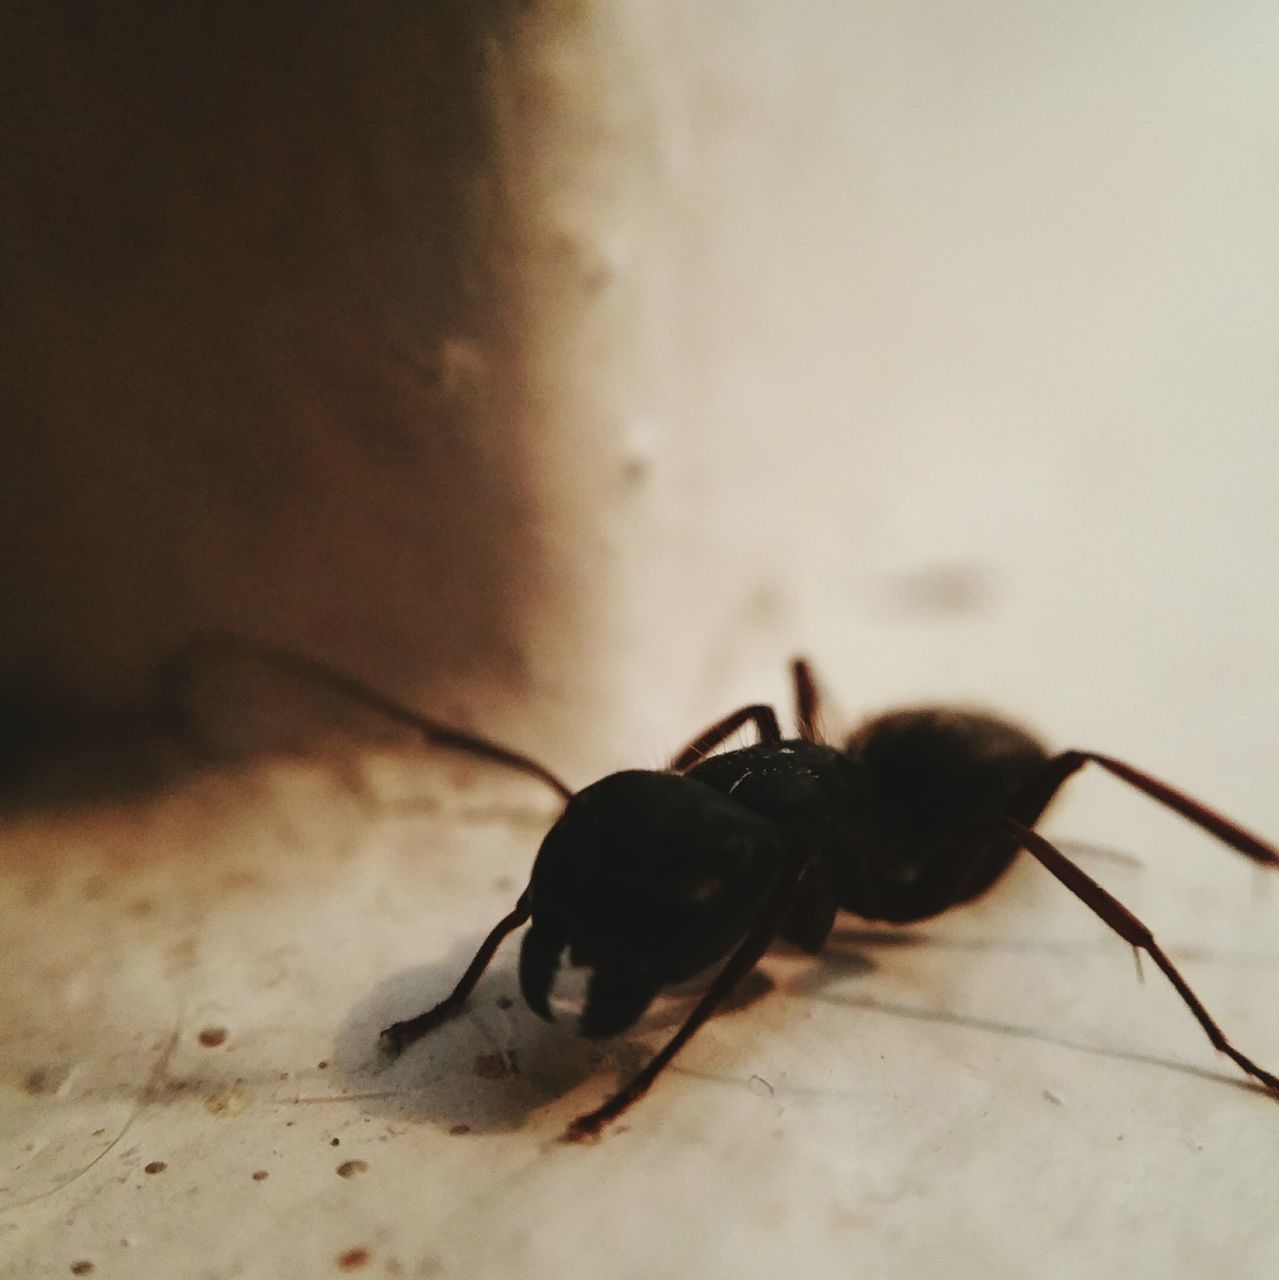 insect, animal themes, animals in the wild, close-up, one animal, indoors, no people, day